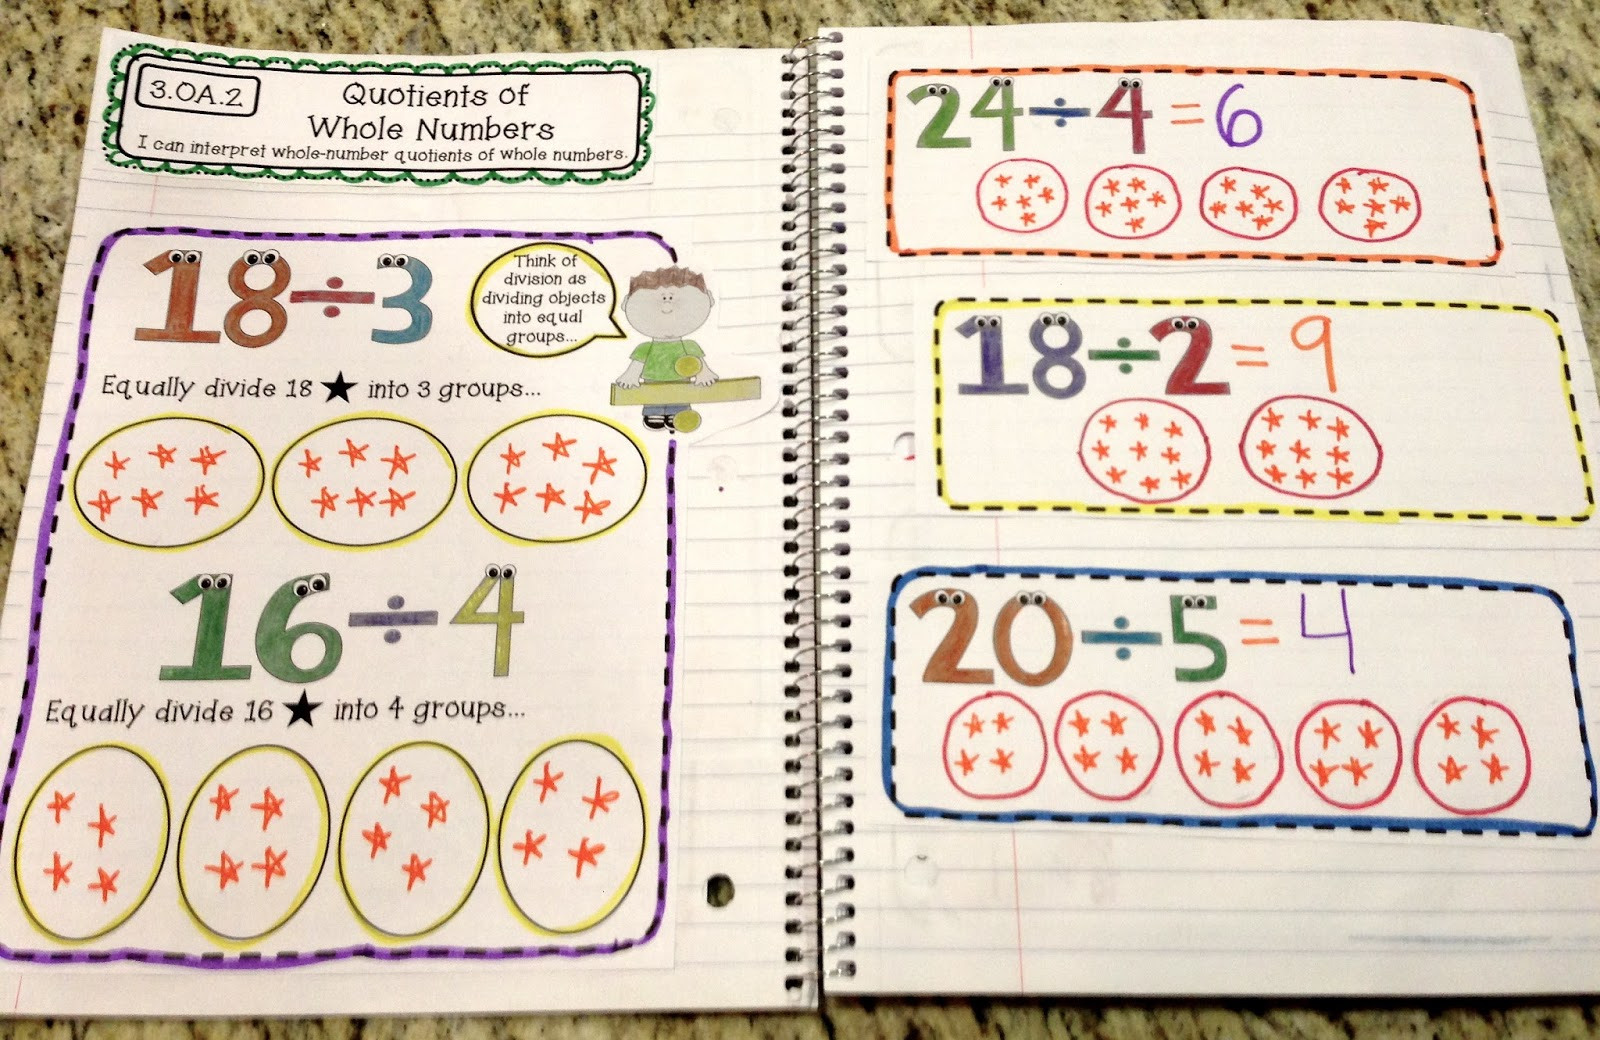 3rd Grade Math Worksheets – Free Division Worksheets for 3rd Grade